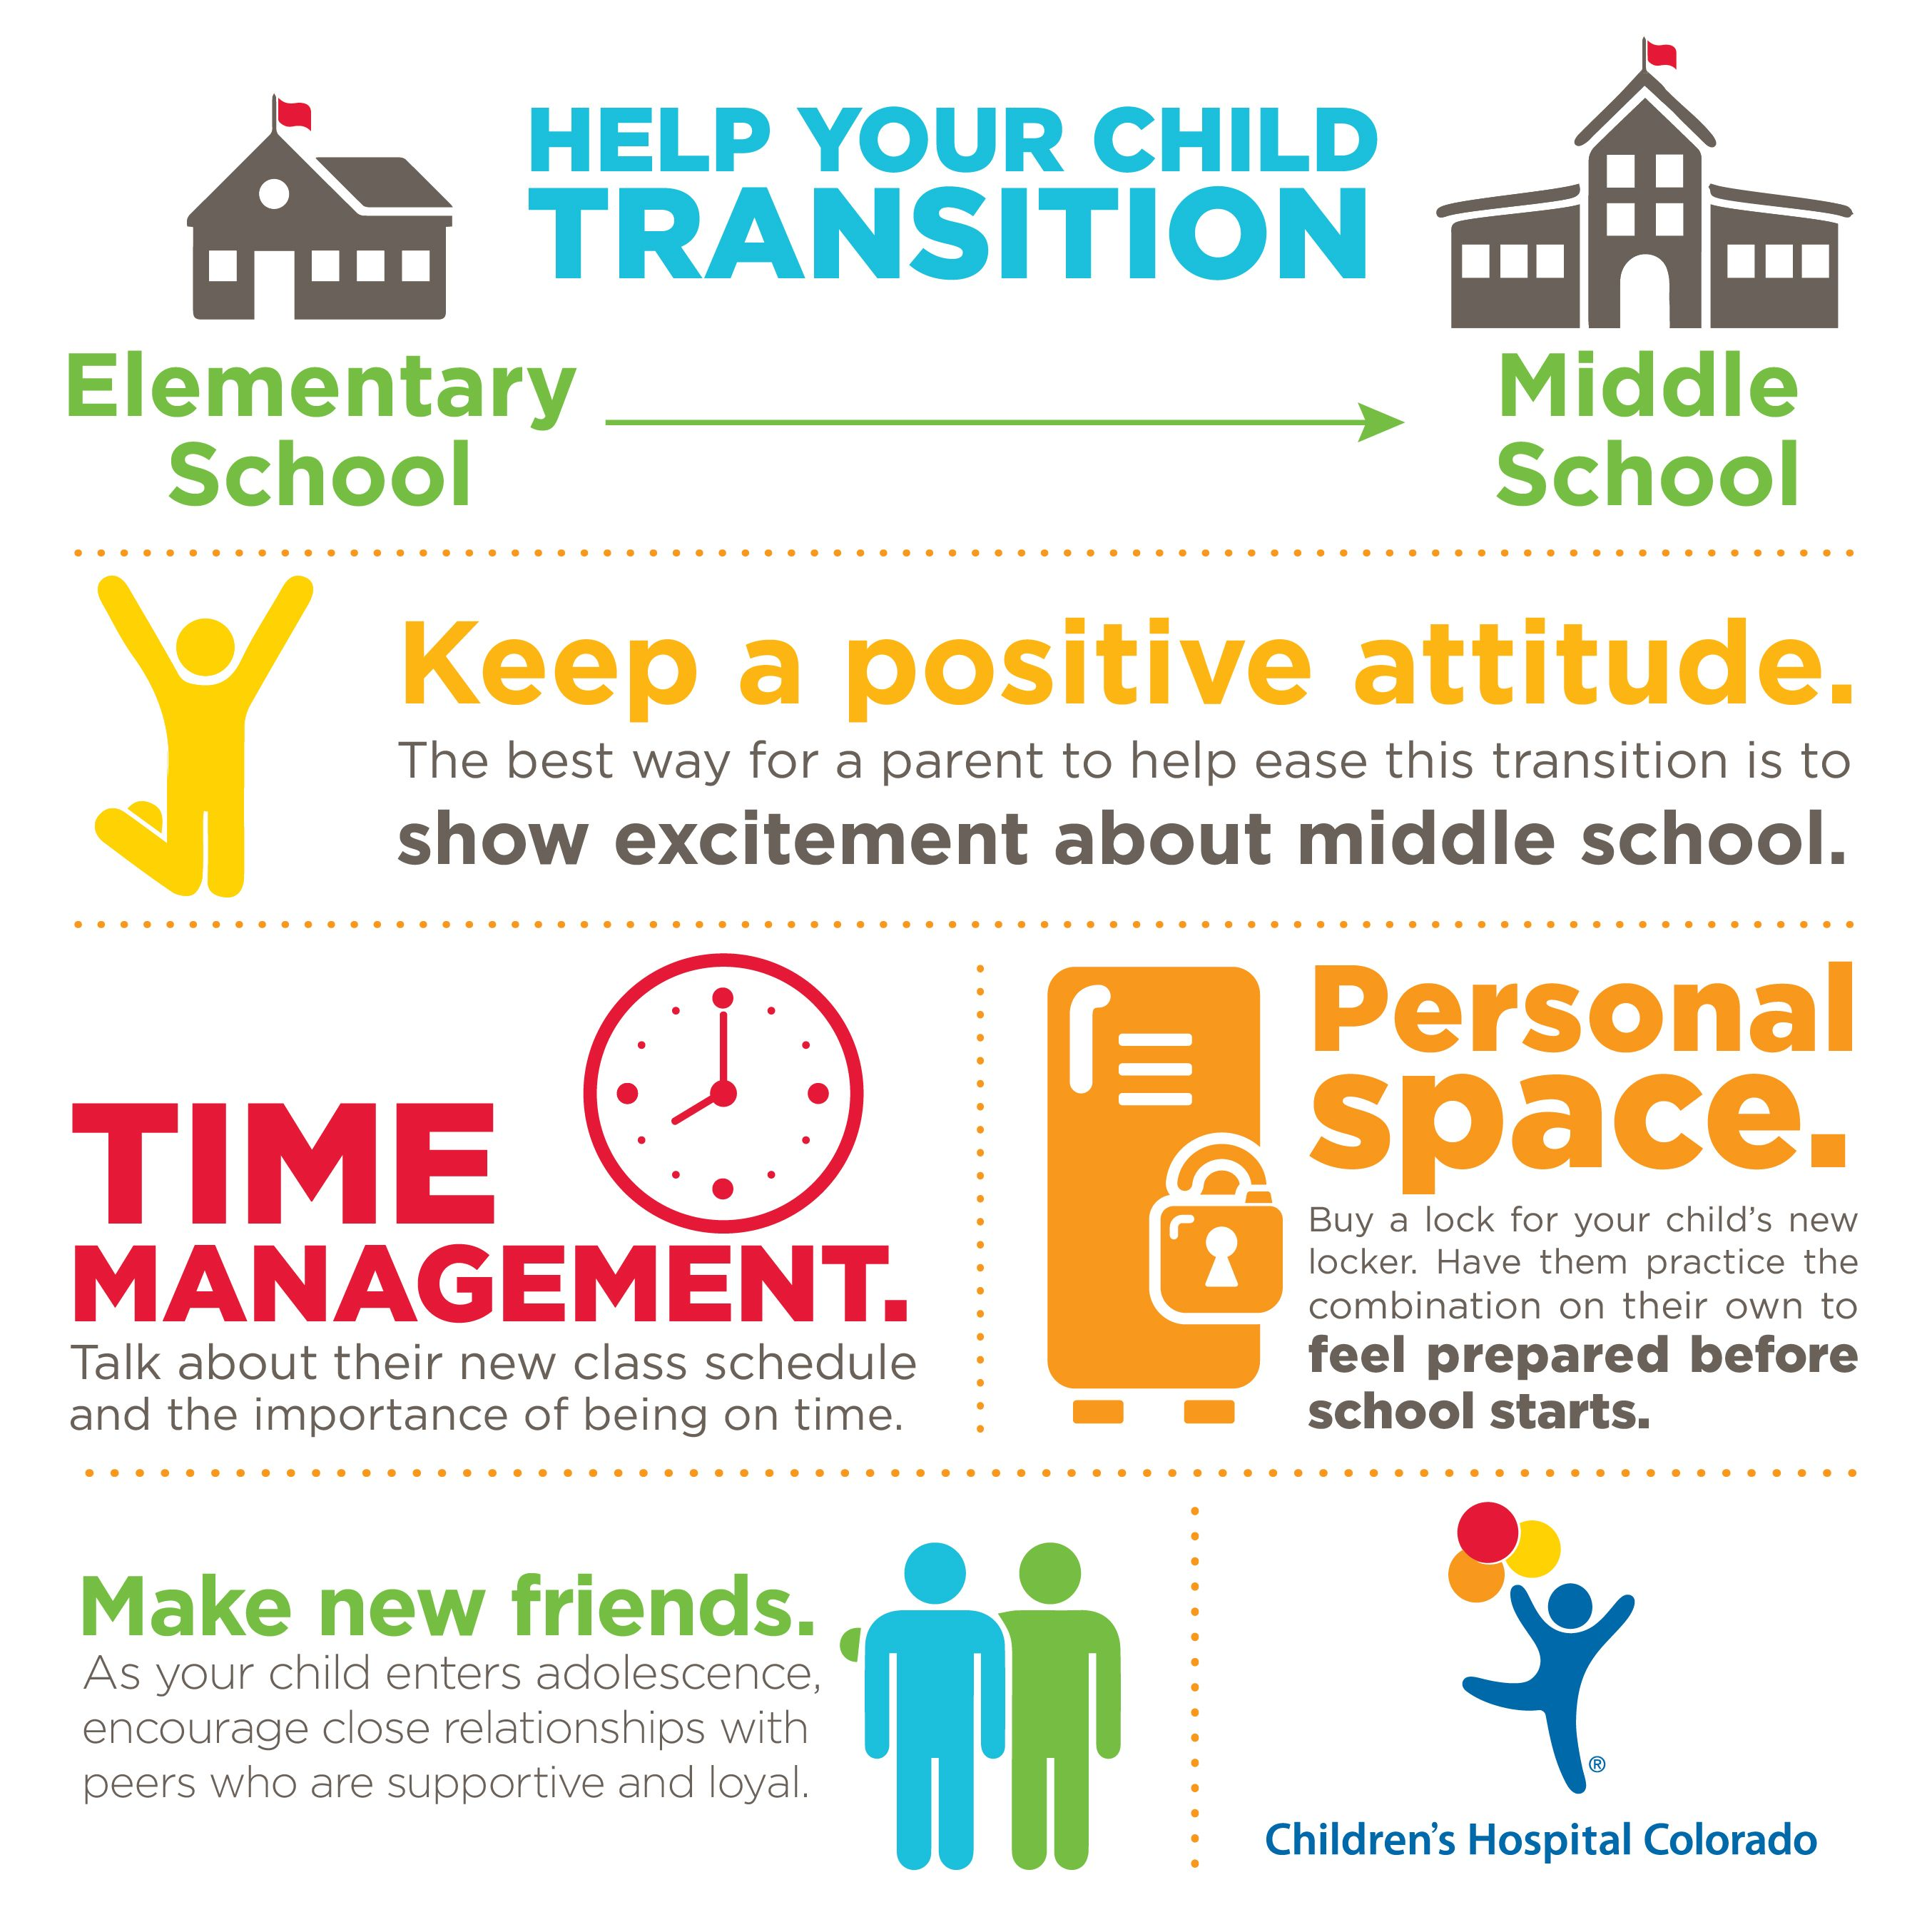 Help Your Child With The Transition From Elementary School